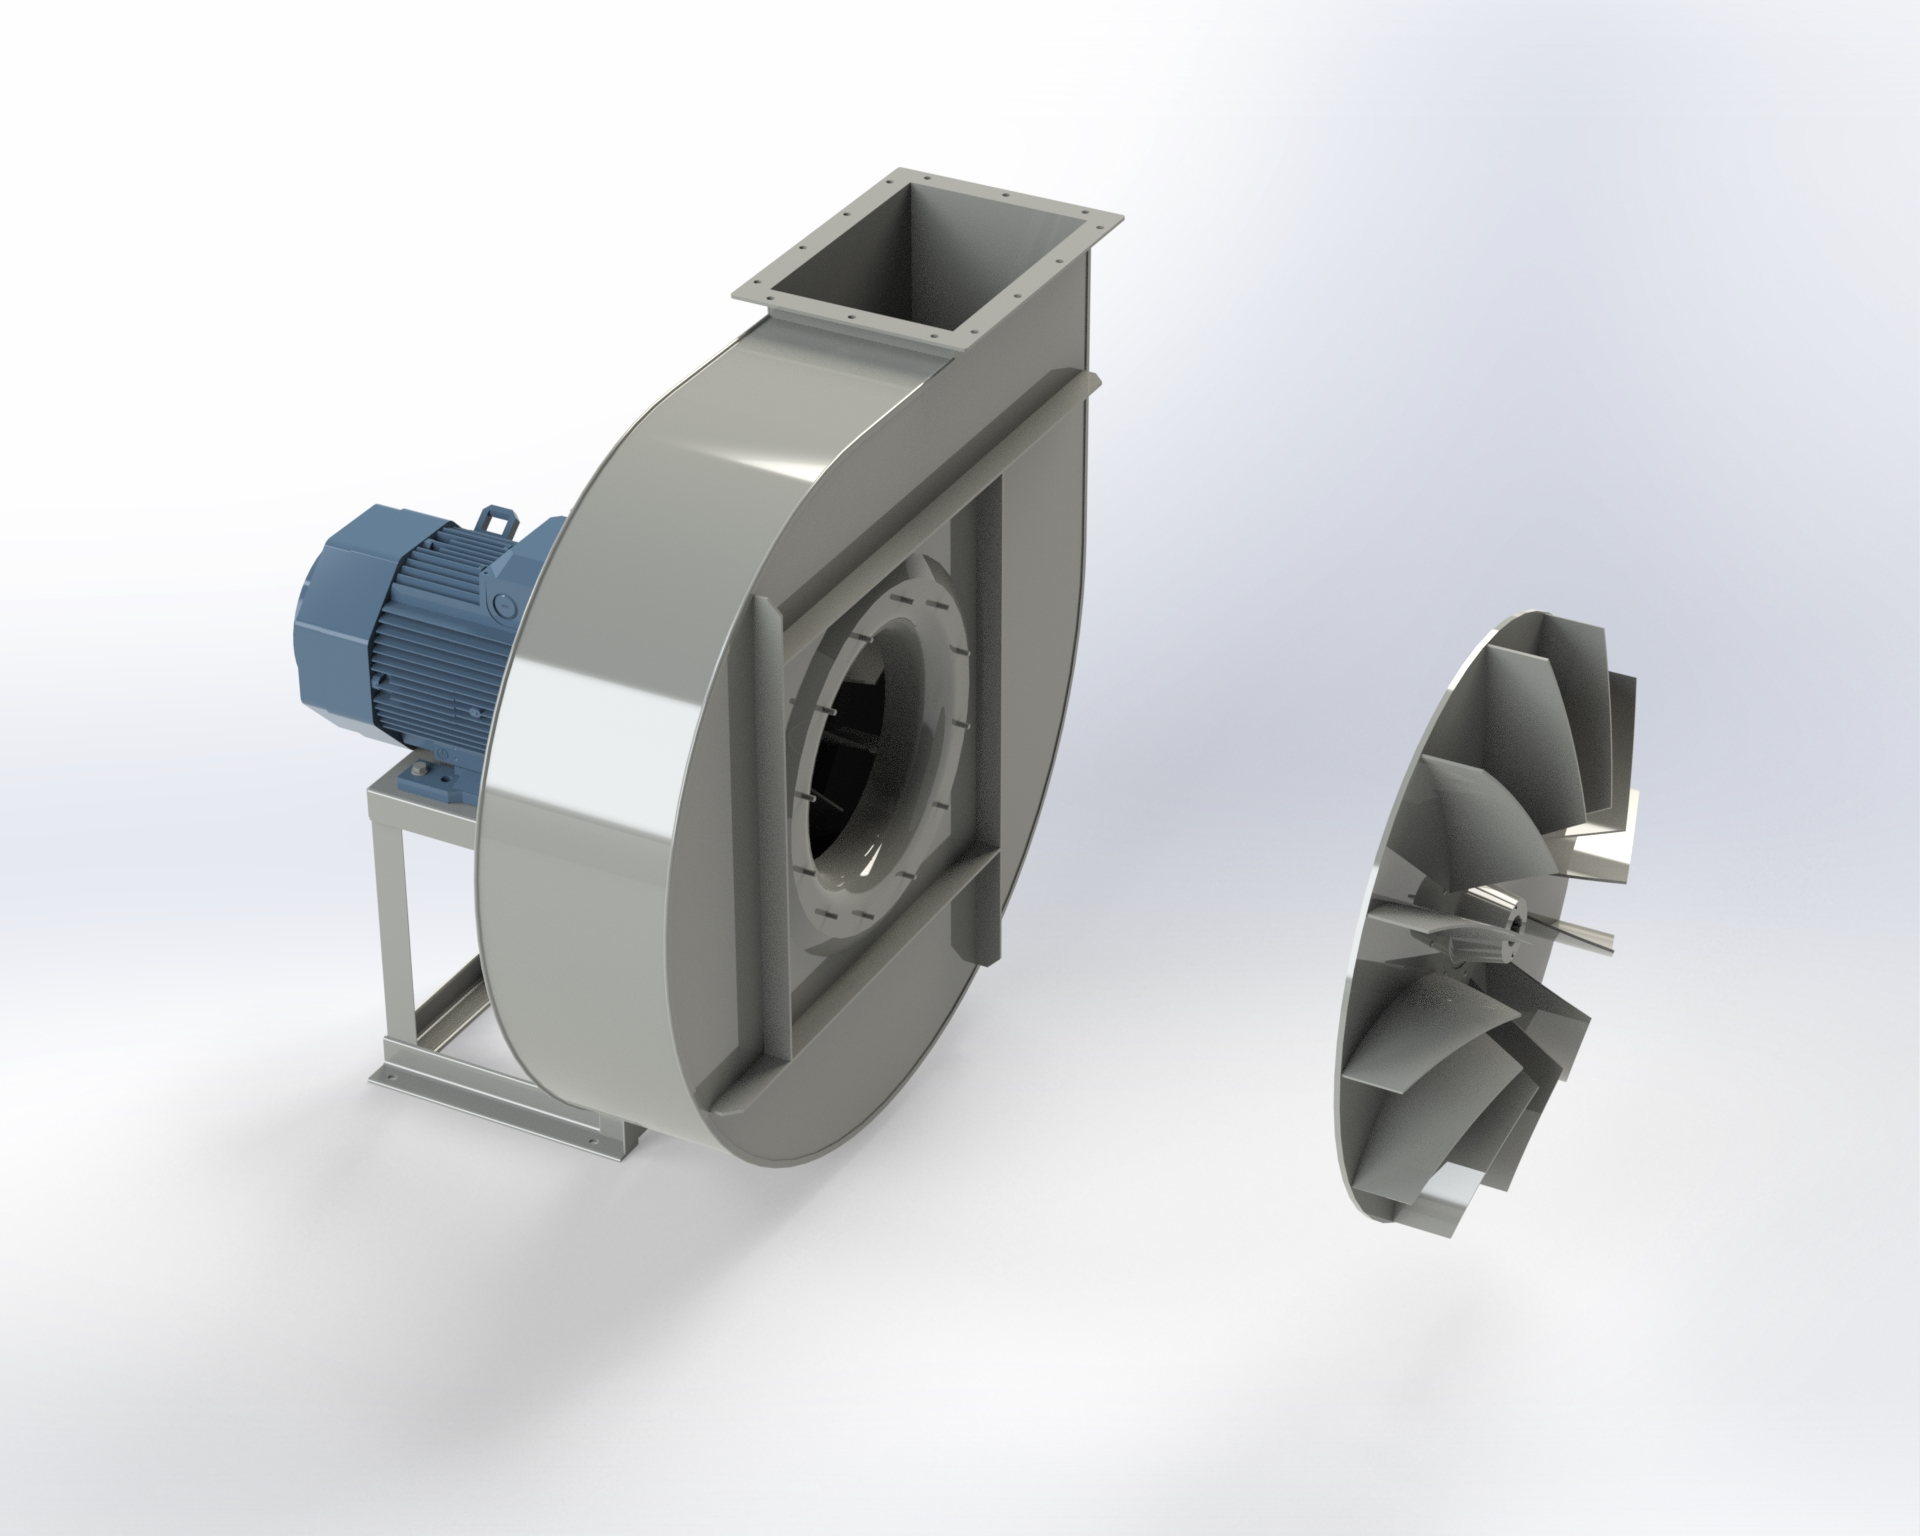 Medium-pressure centrifugal fan. Impeller with open blades. Directly coupled motor.